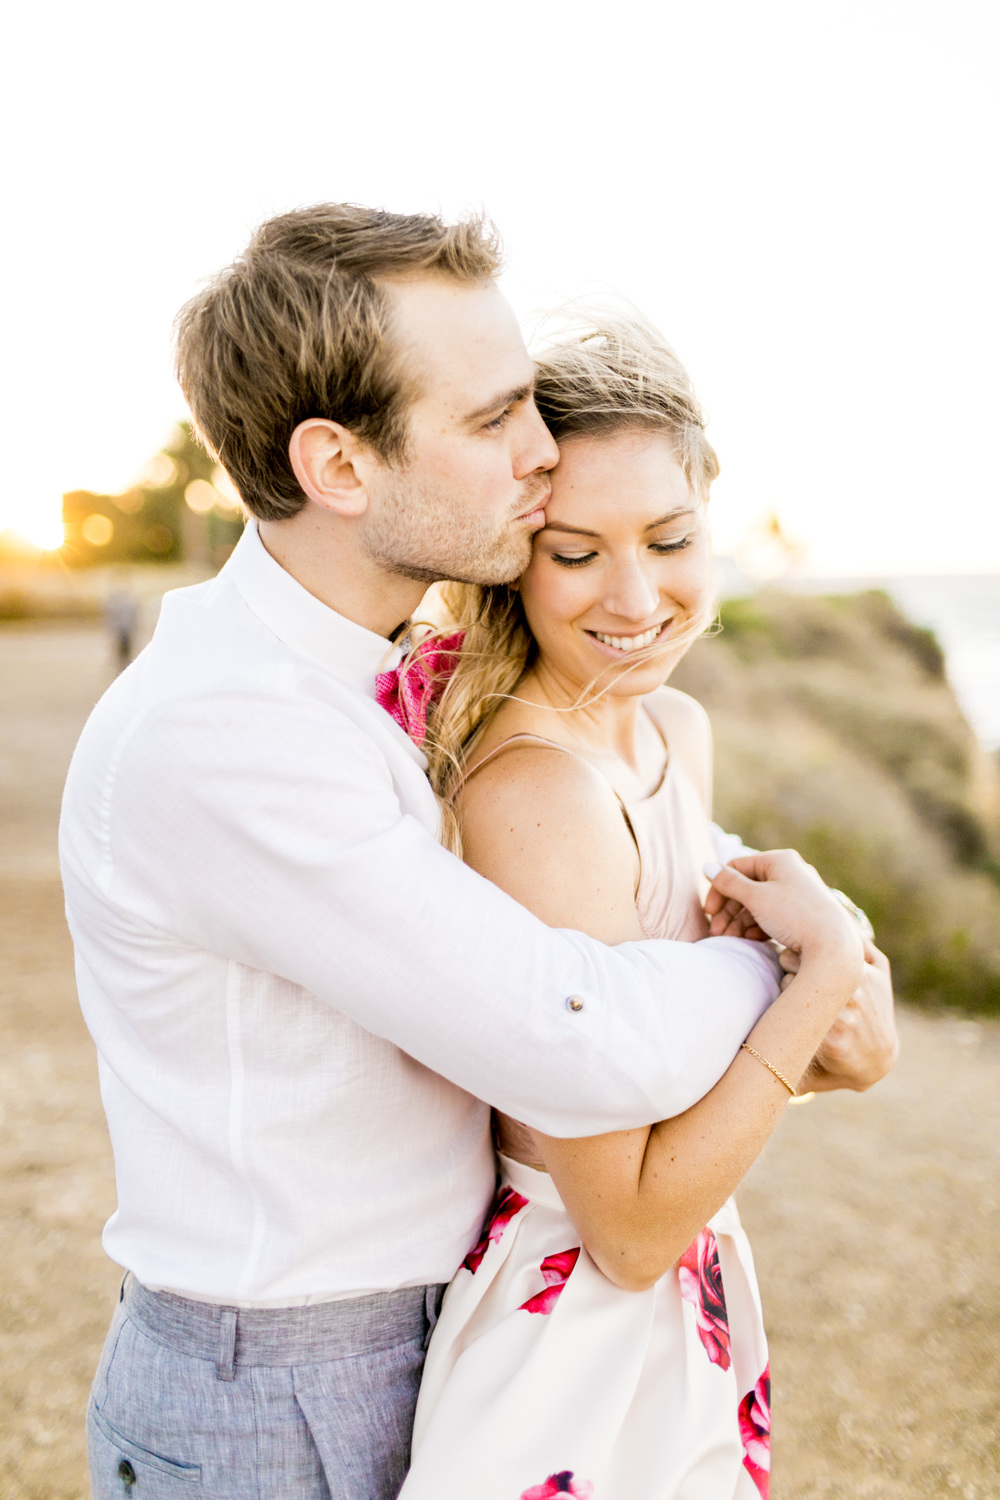 2015Natalie Schutt Photography- Palos Verdes Wedding-67.JPG